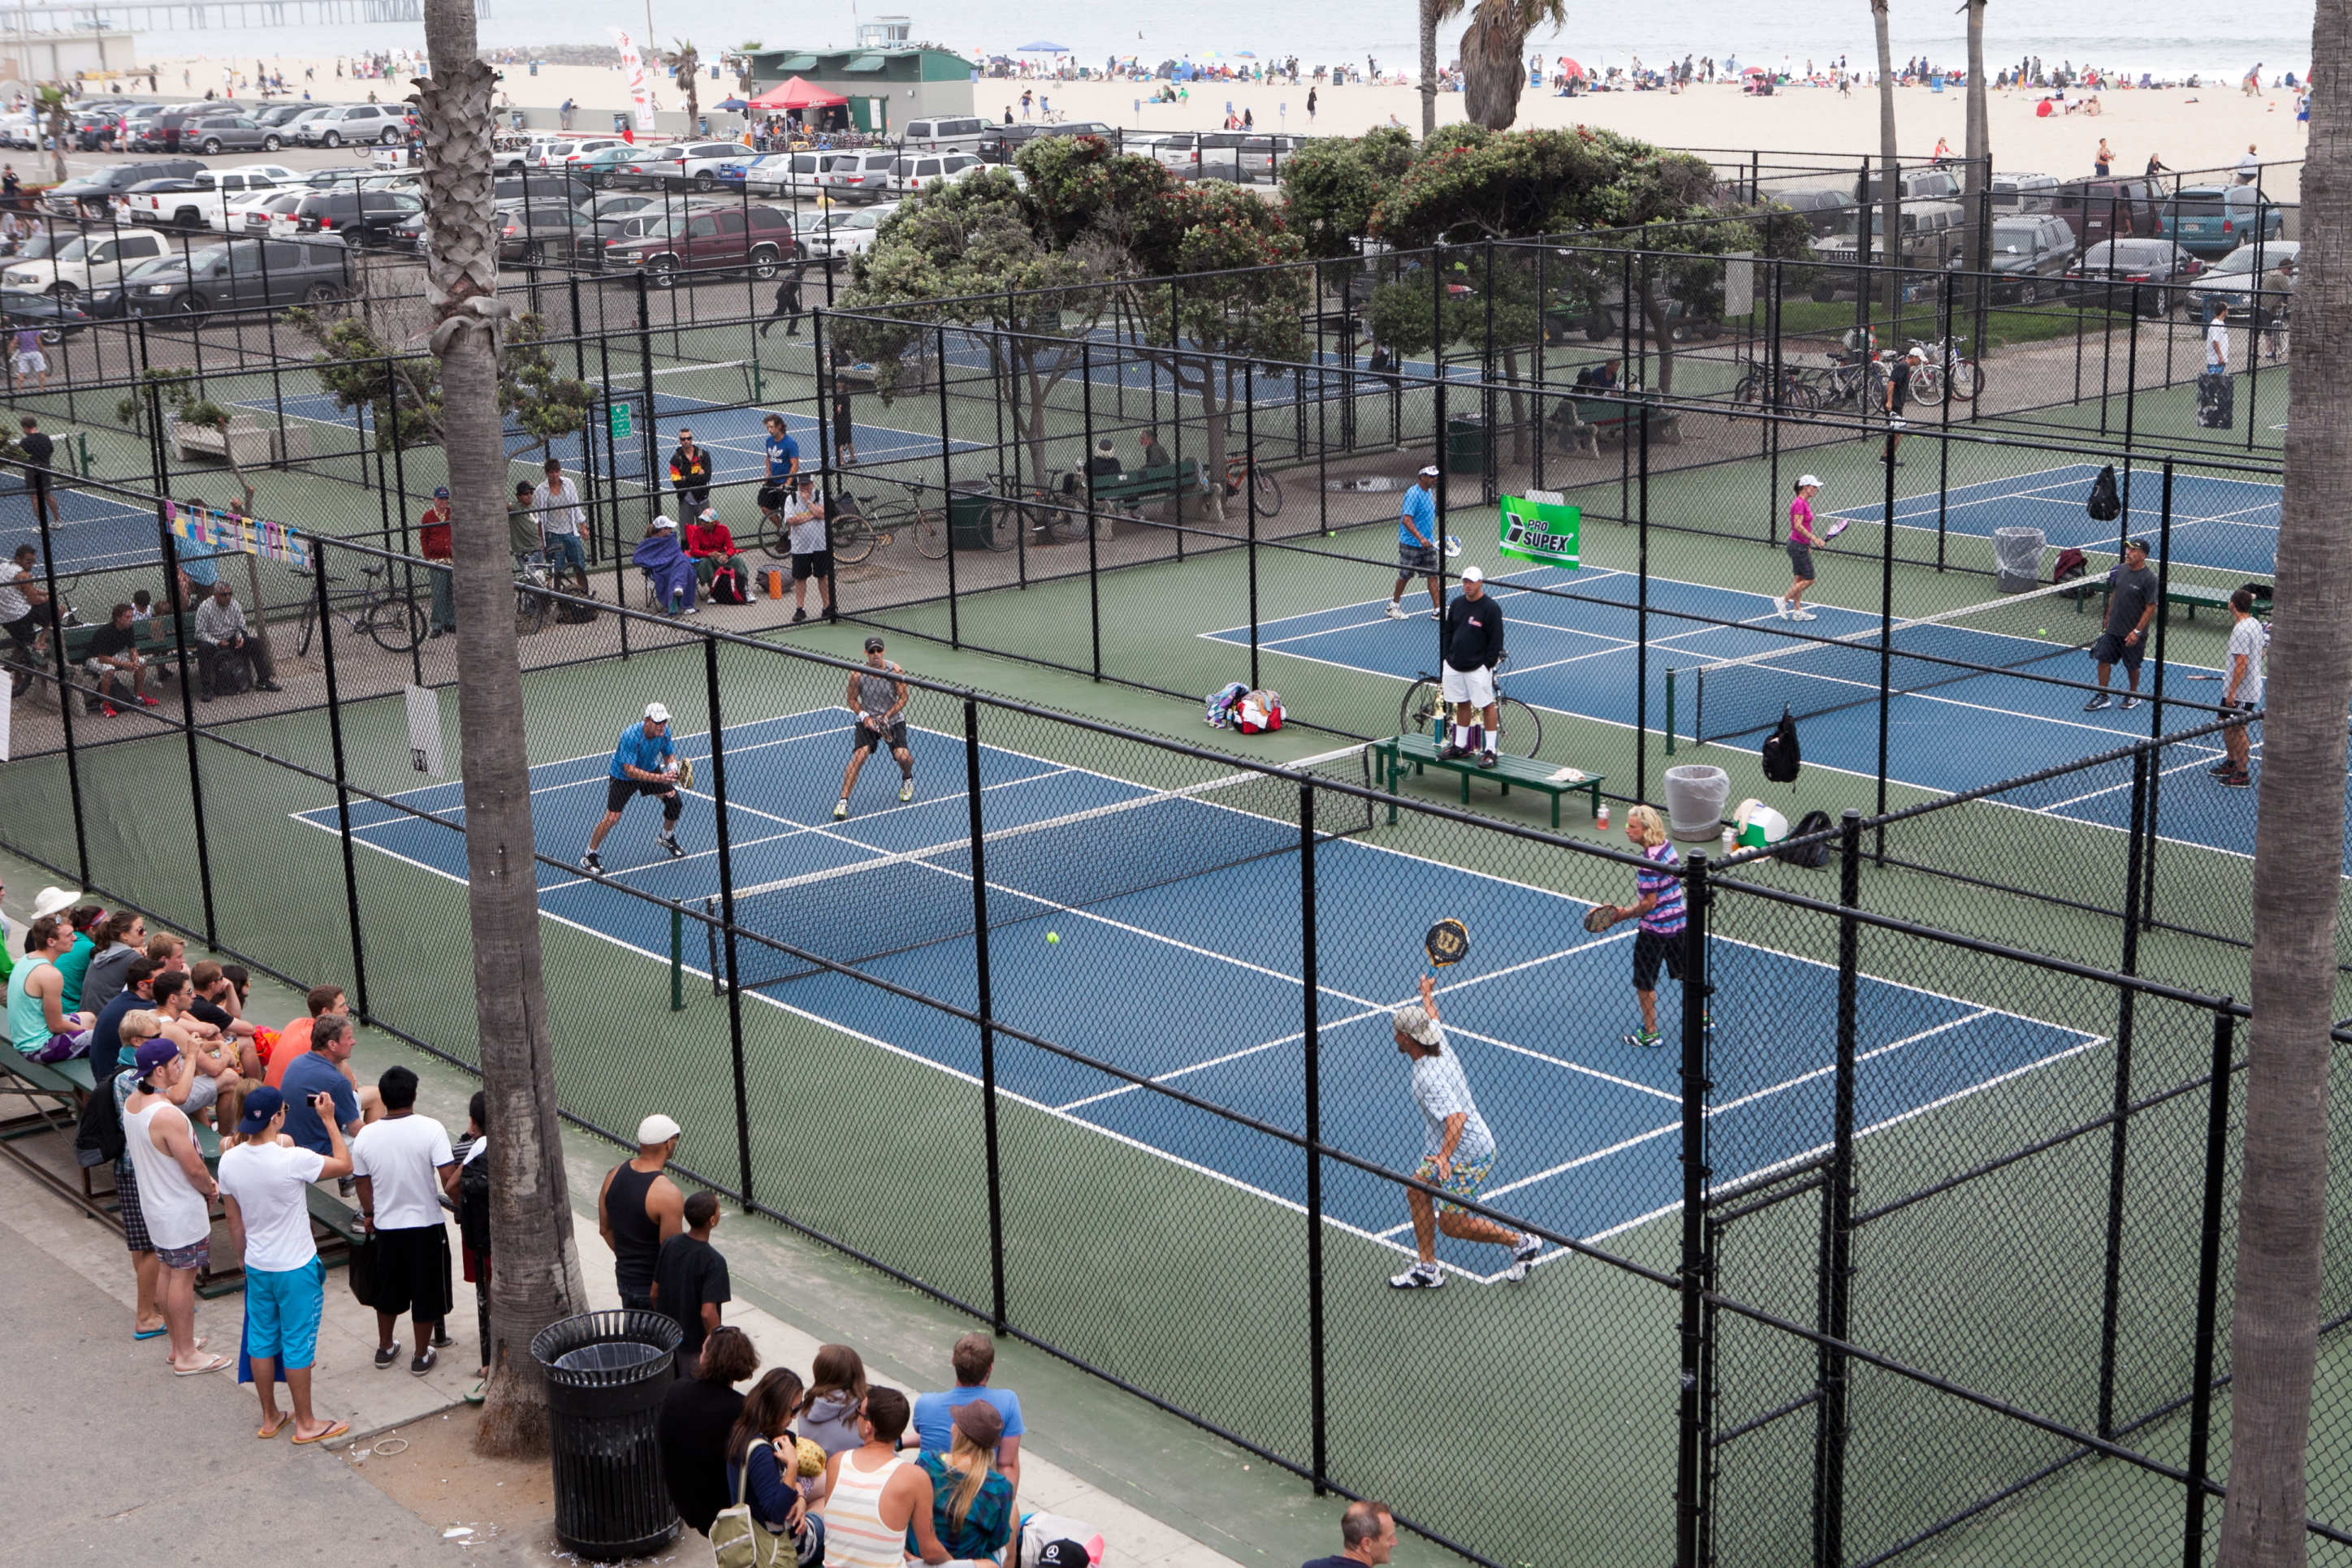 Venice Beach Paddle Tennis Mixed Doubles Tournament Paparazzi Ca Photo Agency Community Info News Events